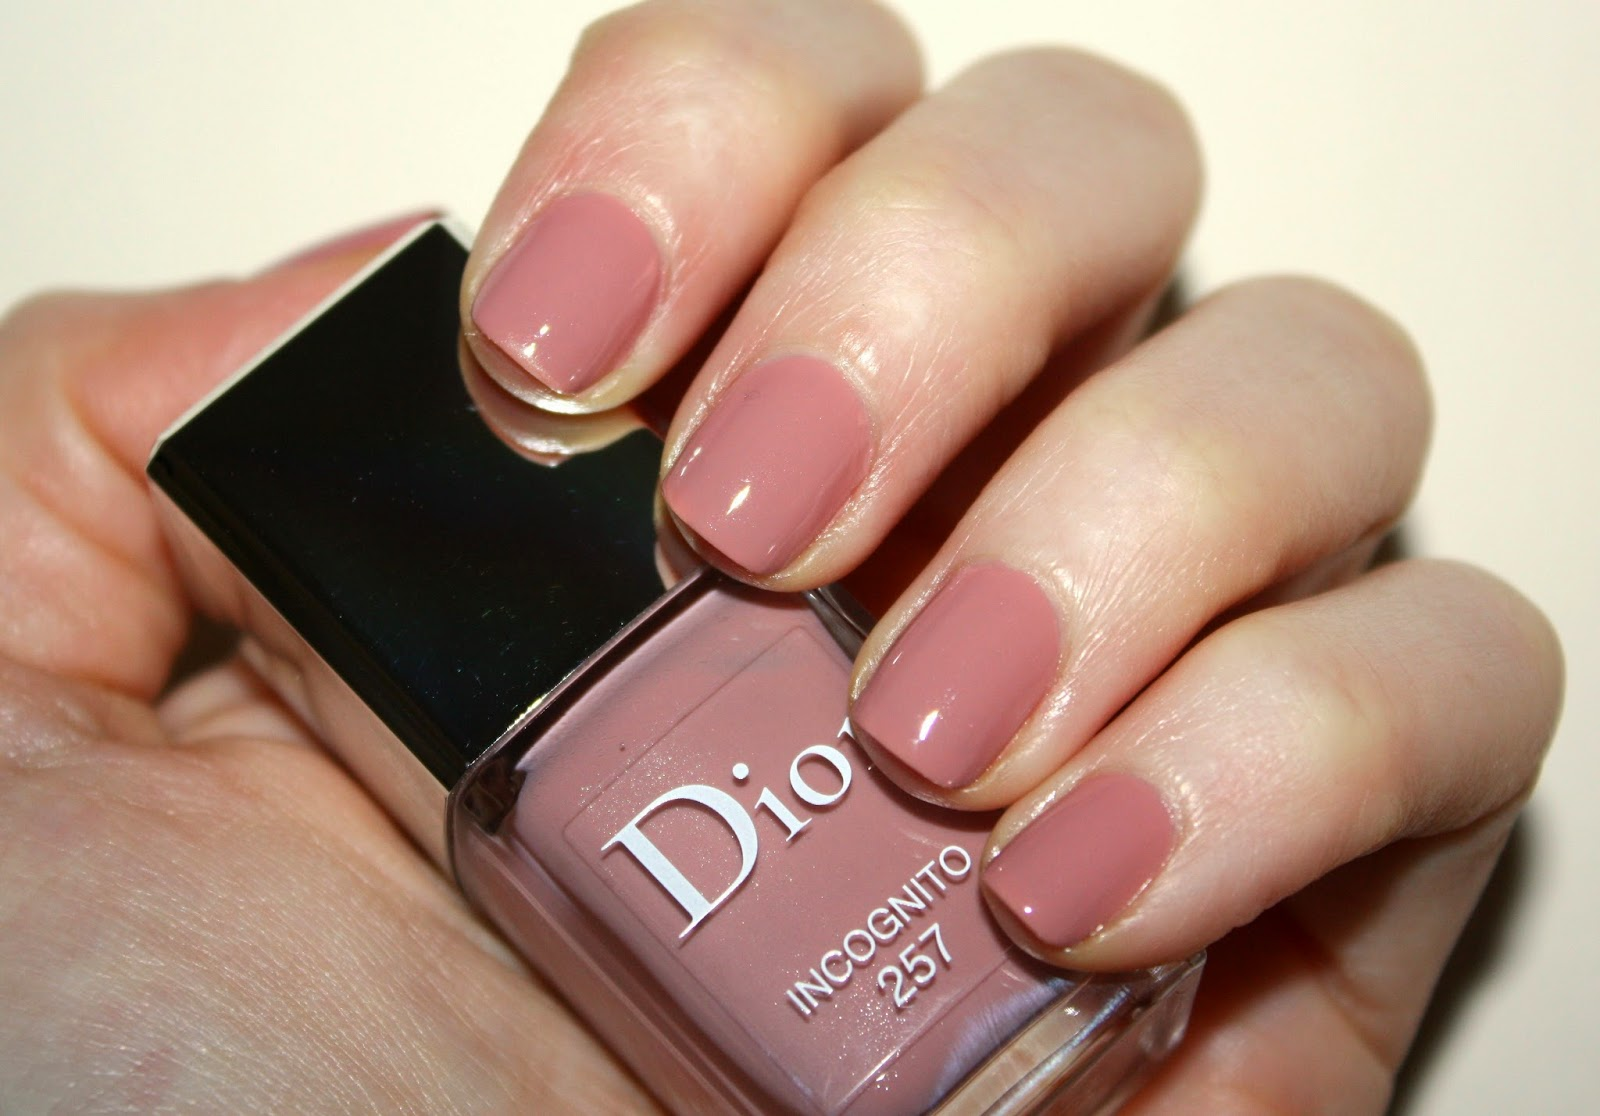 new Dior Gel nail polish in shade Incognito